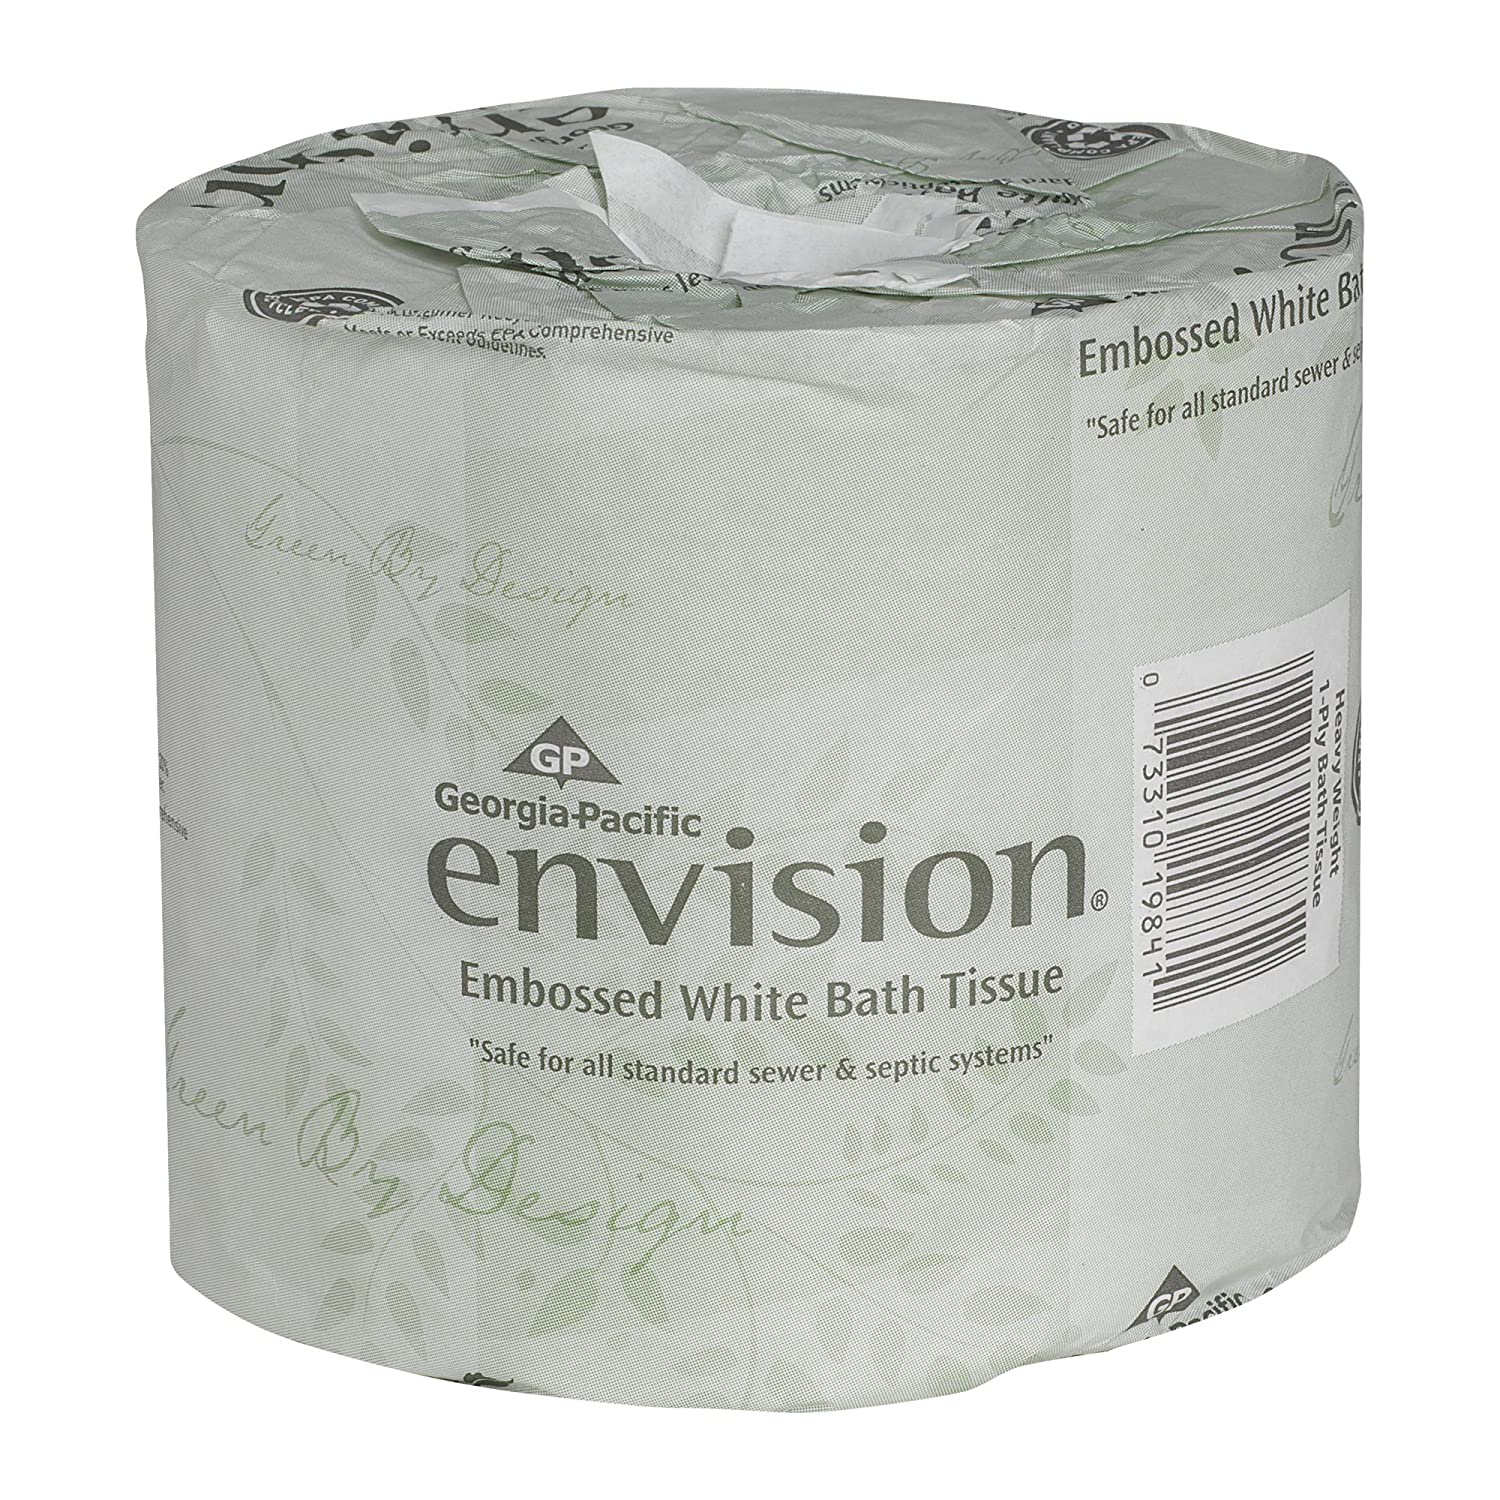 Envision 1-ply embossed toilet paper is one of the most eco friendly toilet papers around